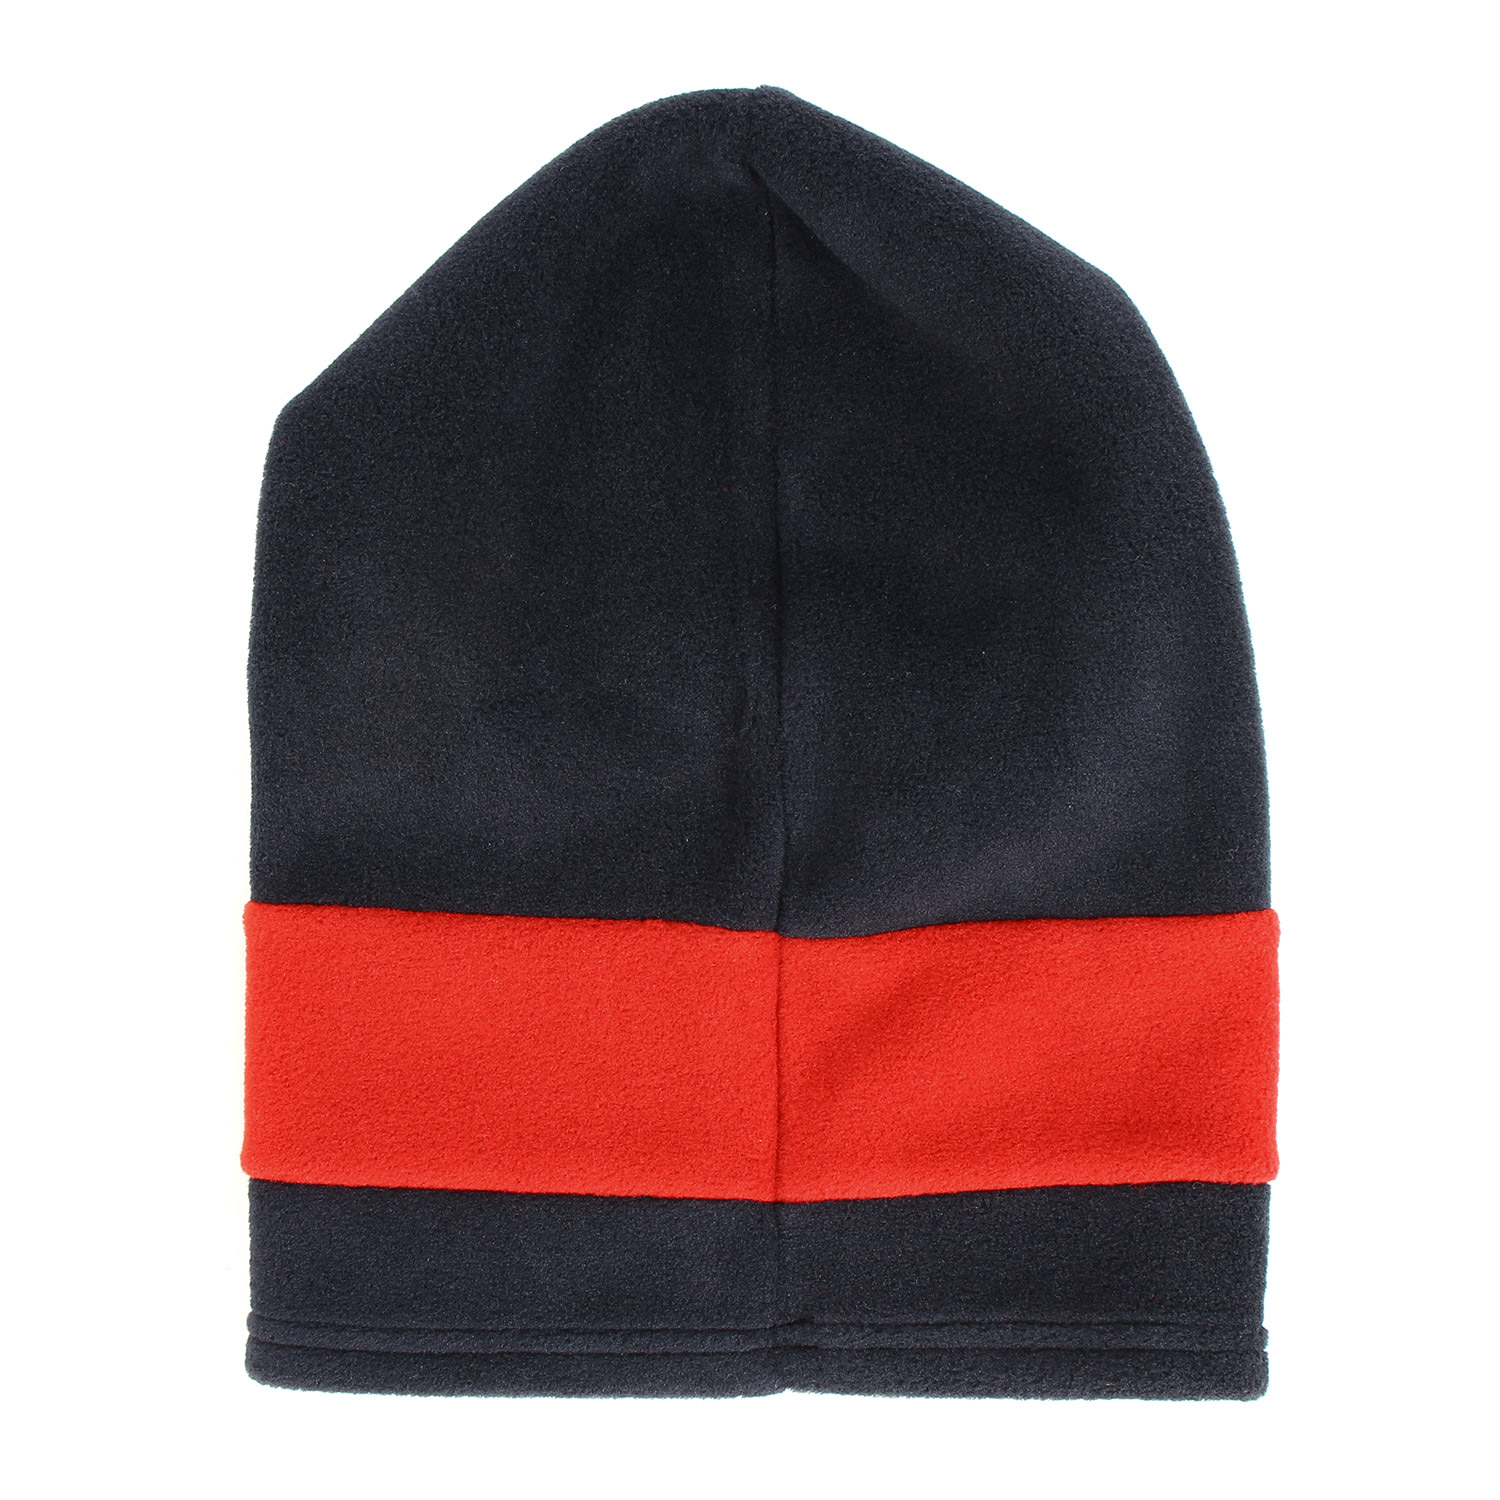 balaclava red rainbow dinosaur hooded hat